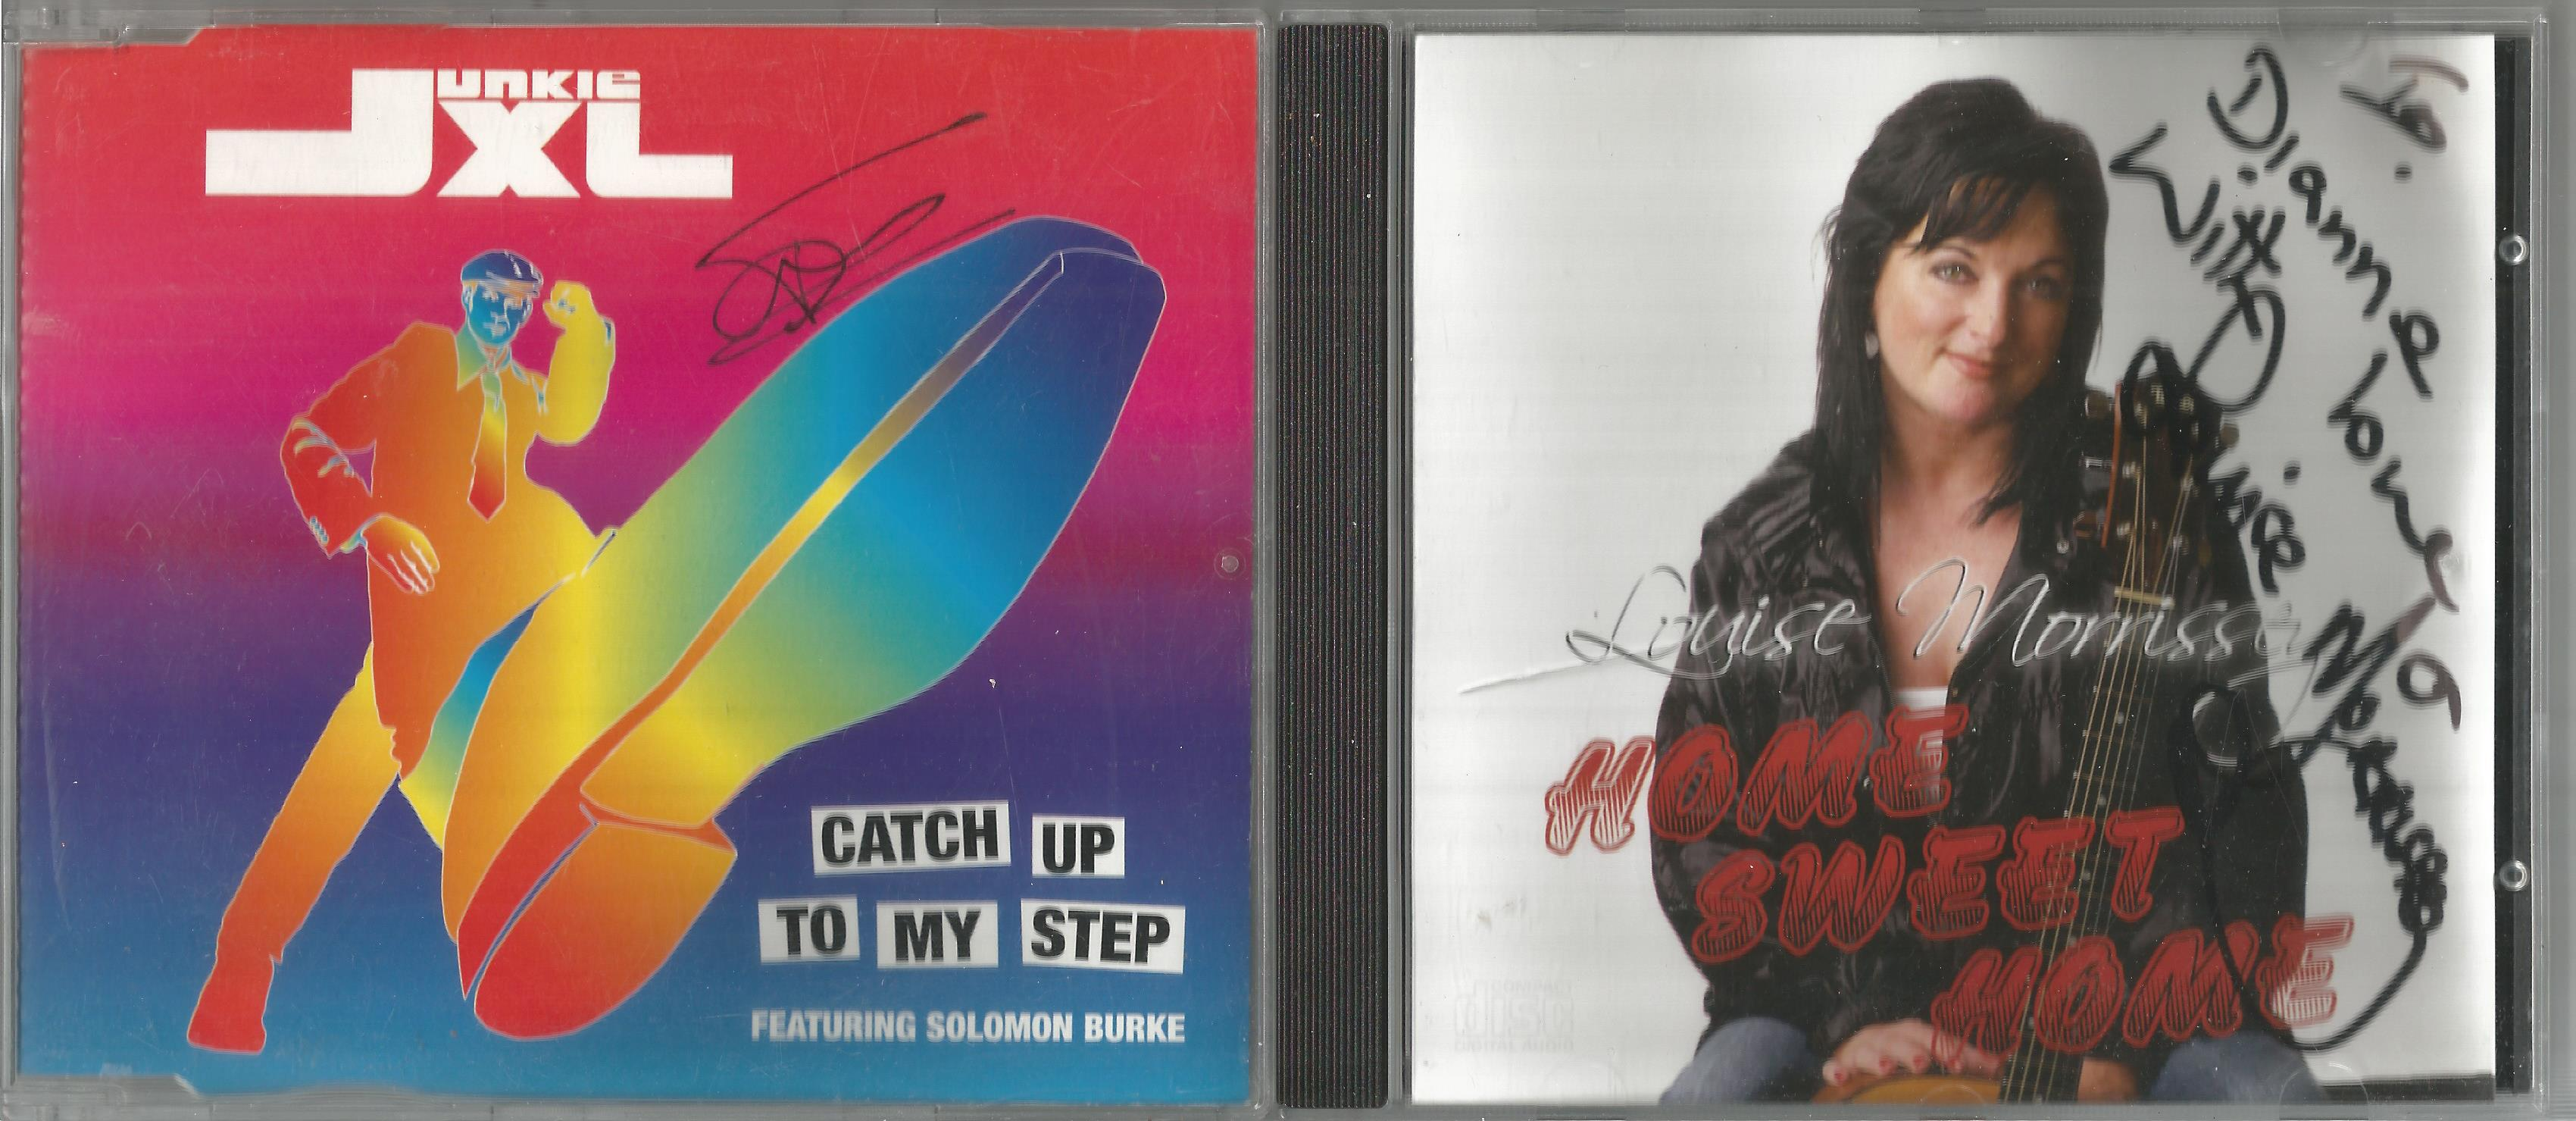 6 Signed CDs Including Emily Levy (Lost and Found) Disc Included, Junkie XL (Catch up to my Step)